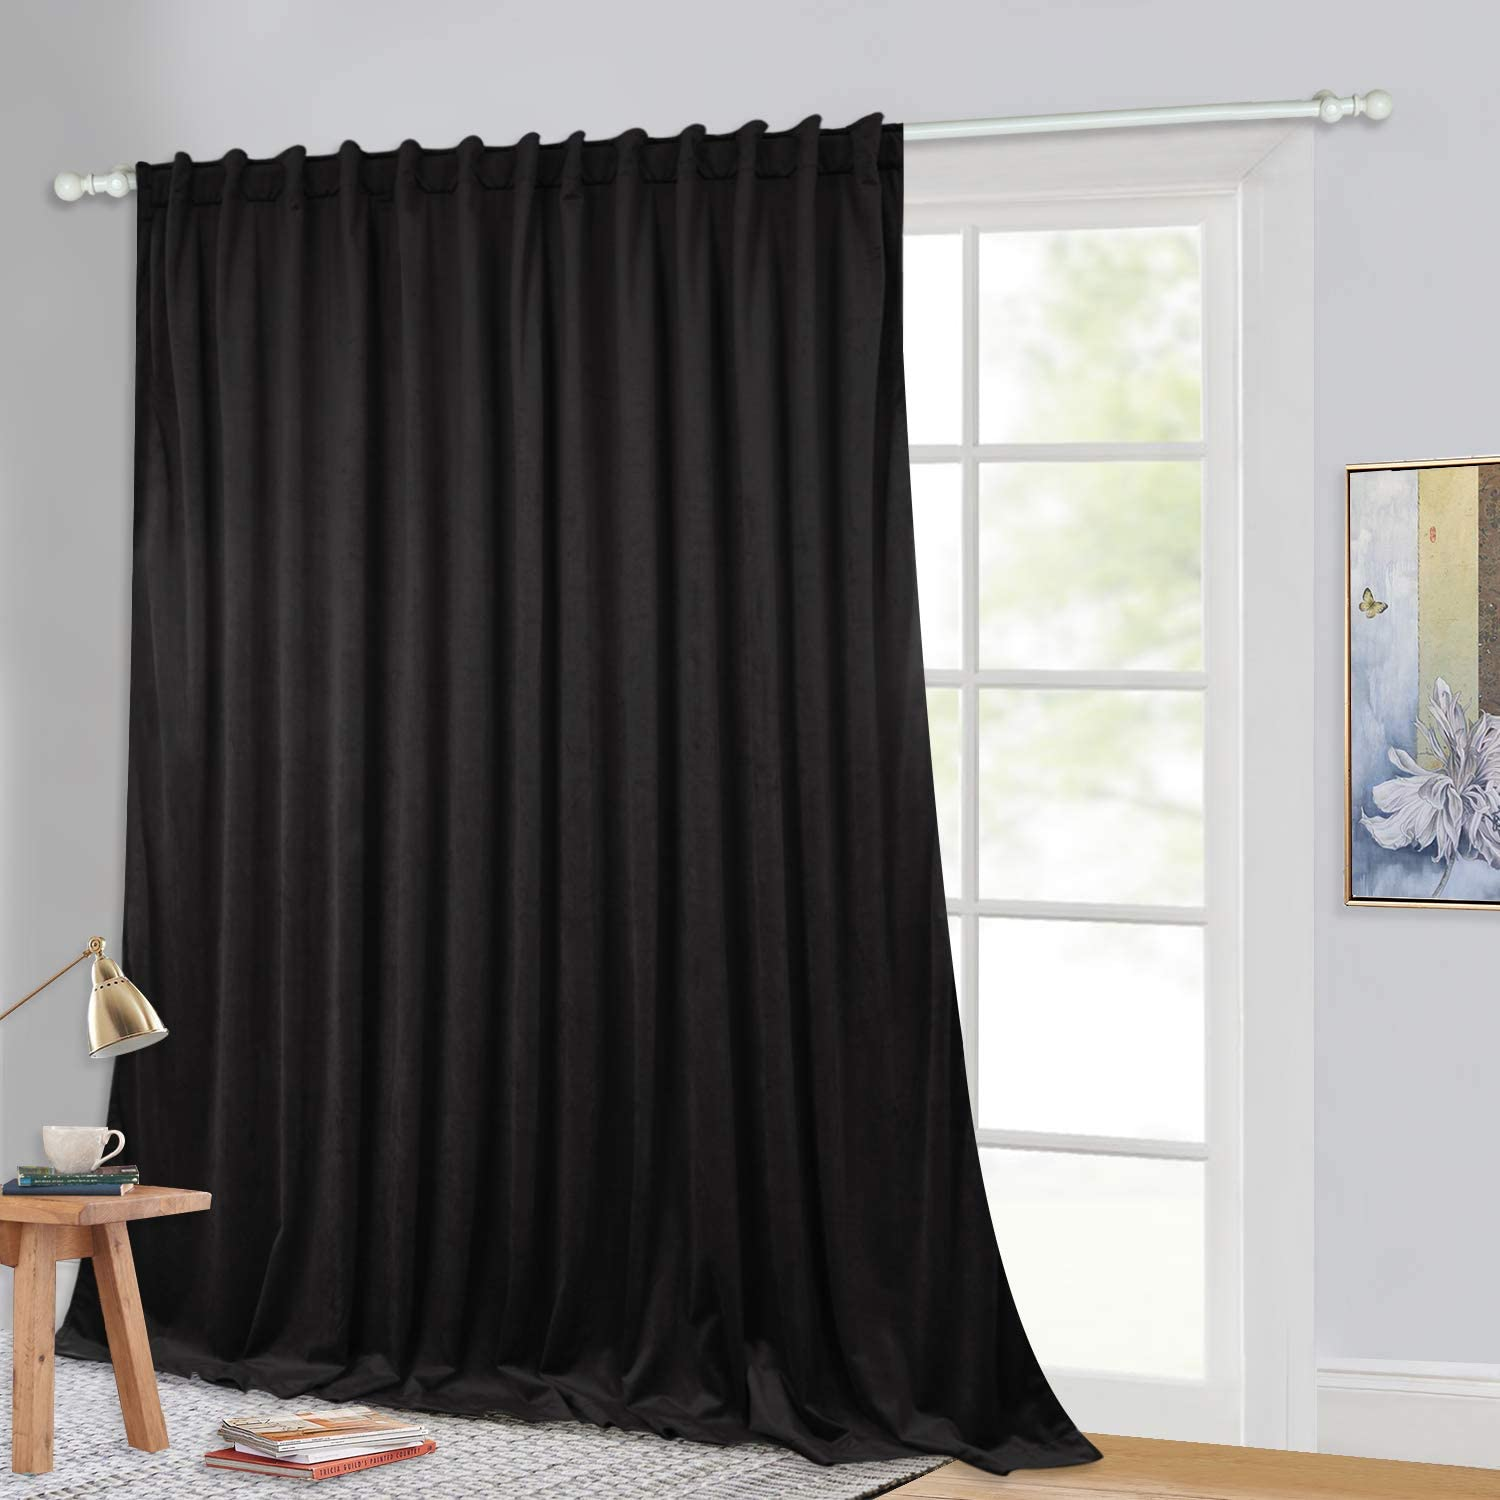 Amazon Com Stangh Curtains For Sliding Glass Door Black Velvet Curtains 108 Inch Length Living Room Extra Wide Blackout Window Drapes For Dining Room Sitting Area Black W100 X L108 Inch